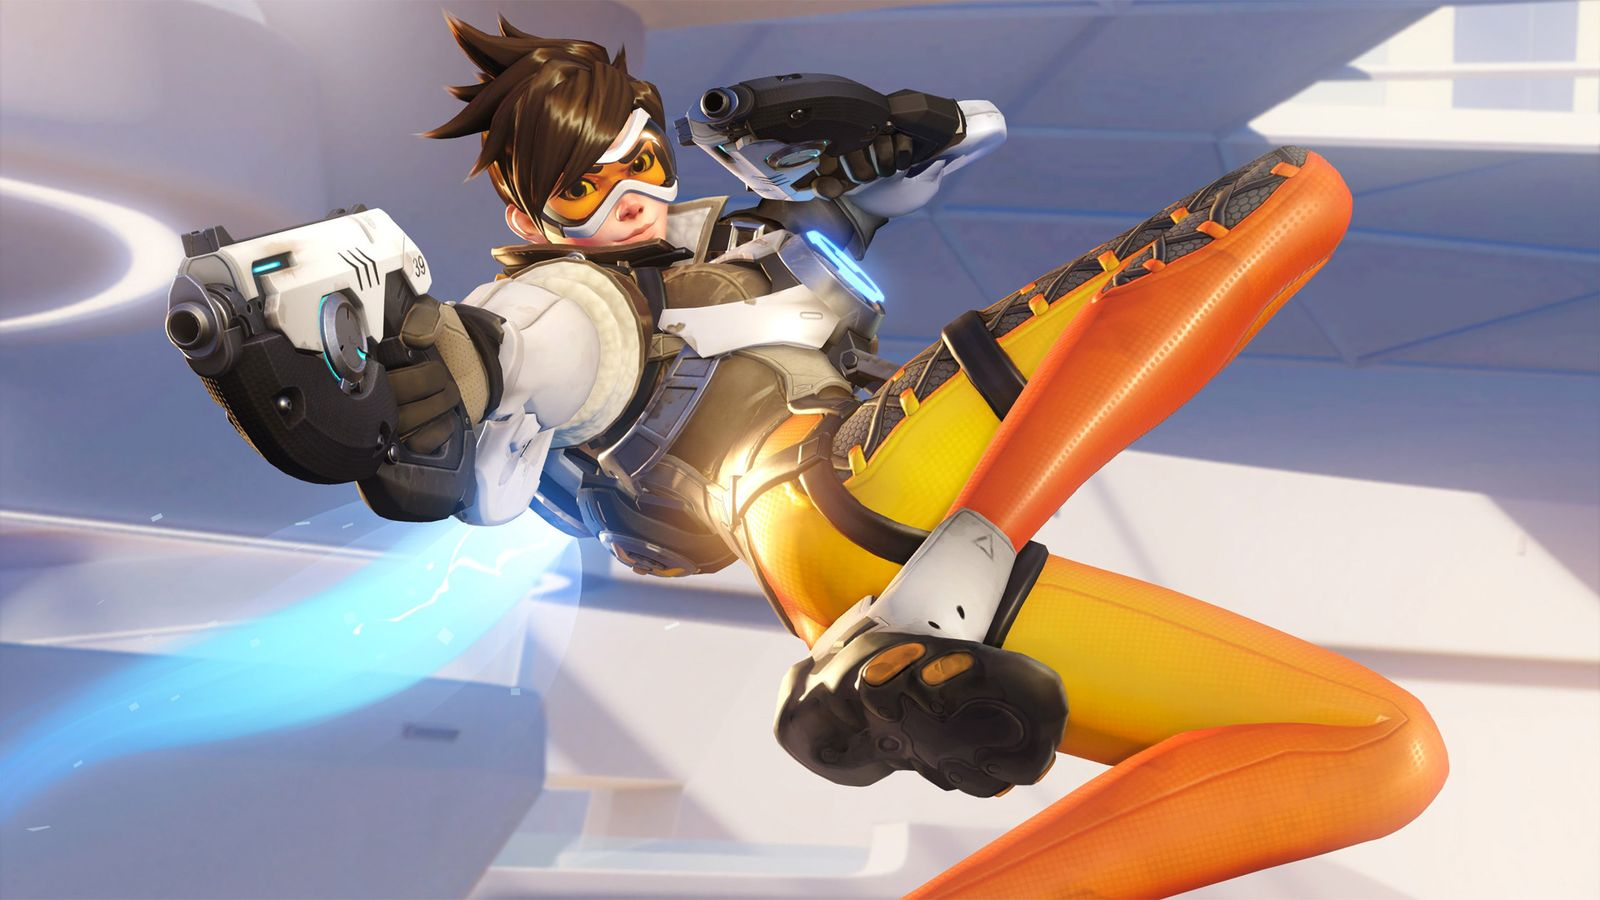 Blizzard S Overwatch Images Tracer Hd Wallpaper And Background